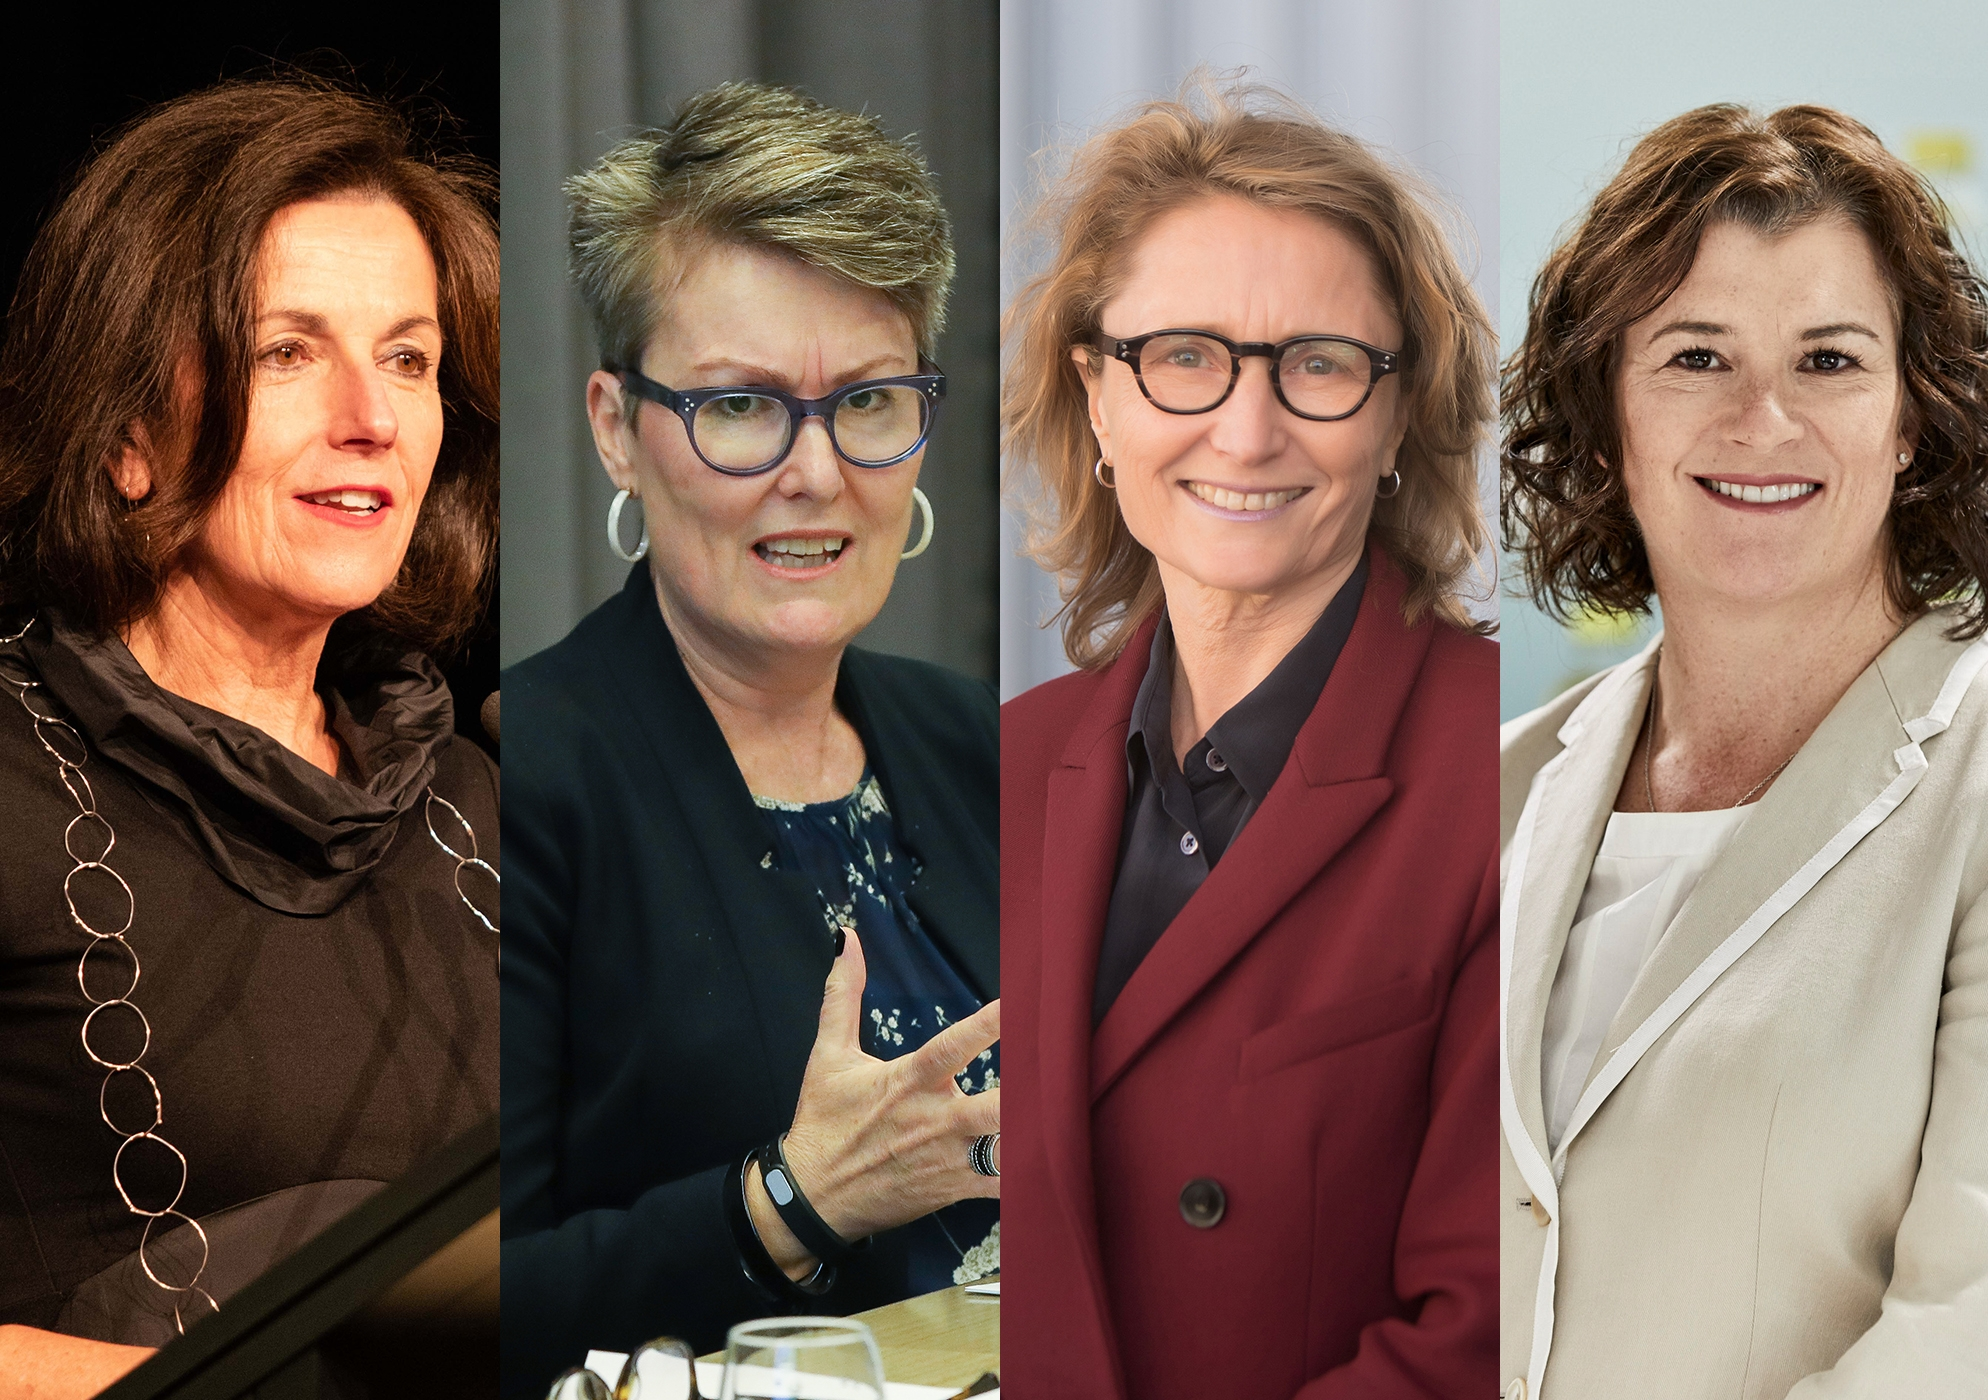 Four UNSW academics have been named to the 2019 AFR Women of Influence list. From left, Professor Helen Lochhead, Dean of UNSW Built Environment; Professor Louise Chappell, Director of the Australian Human Rights Institute; Robyn Norton, Professor of Public Health and principal director of the George Institute for Global Health; and Tracey O'Brien, Associate Professor in paediatrics and director of the Kids Cancer Centre at Sydney Children's Hospital.